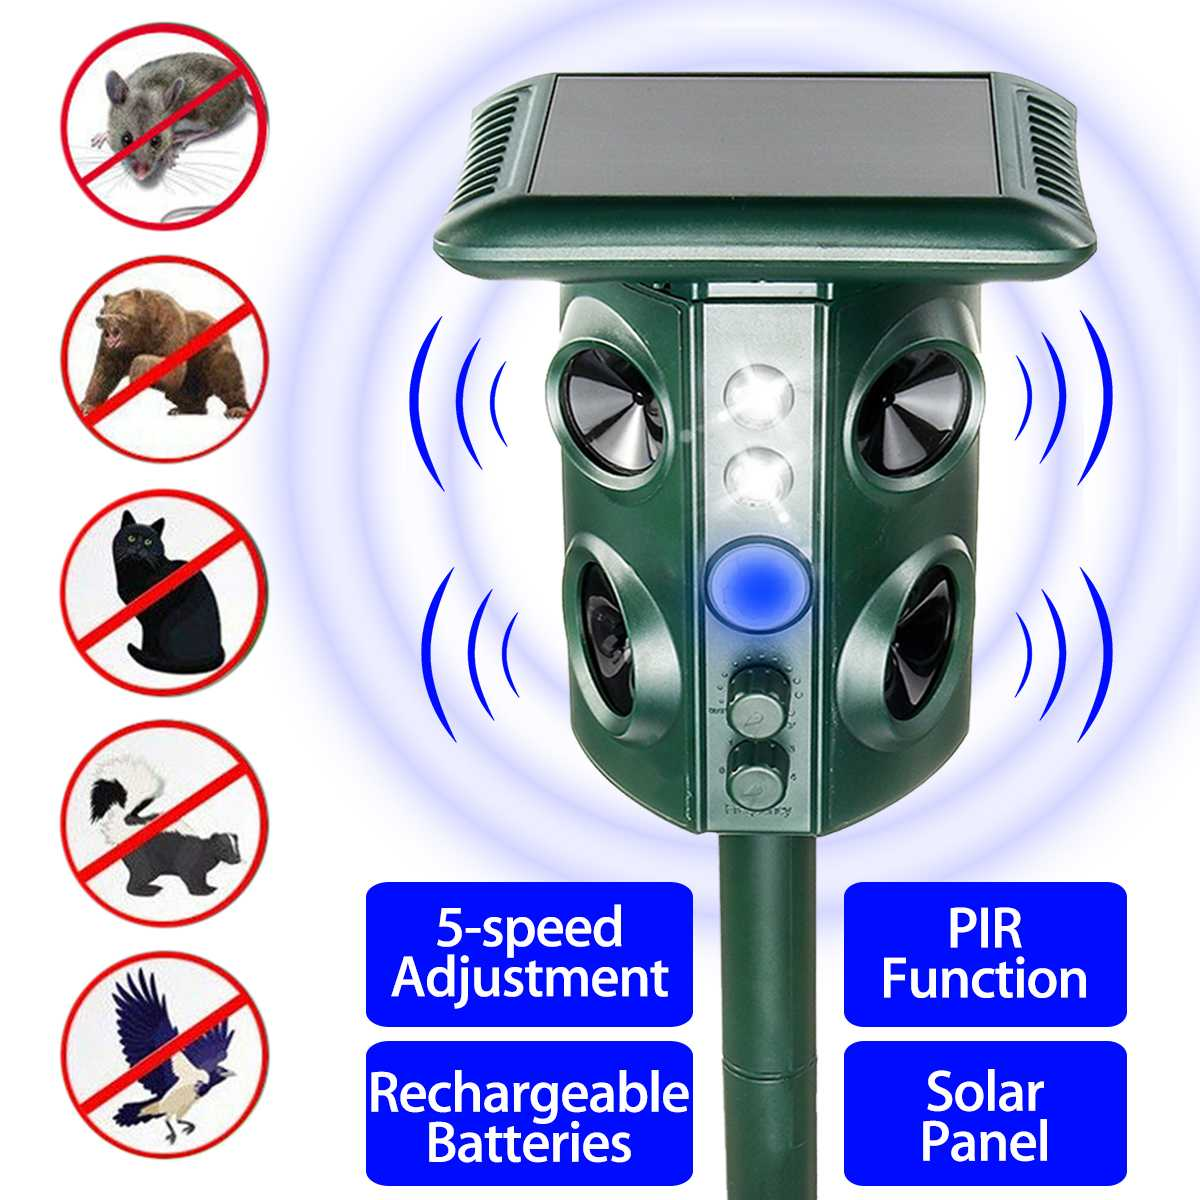 Repellent Waterproof Electronic Ultrasonic Solar Pest Repeller Garden Yard Repellent Pest Control Dog Bird Mosquito Repeller